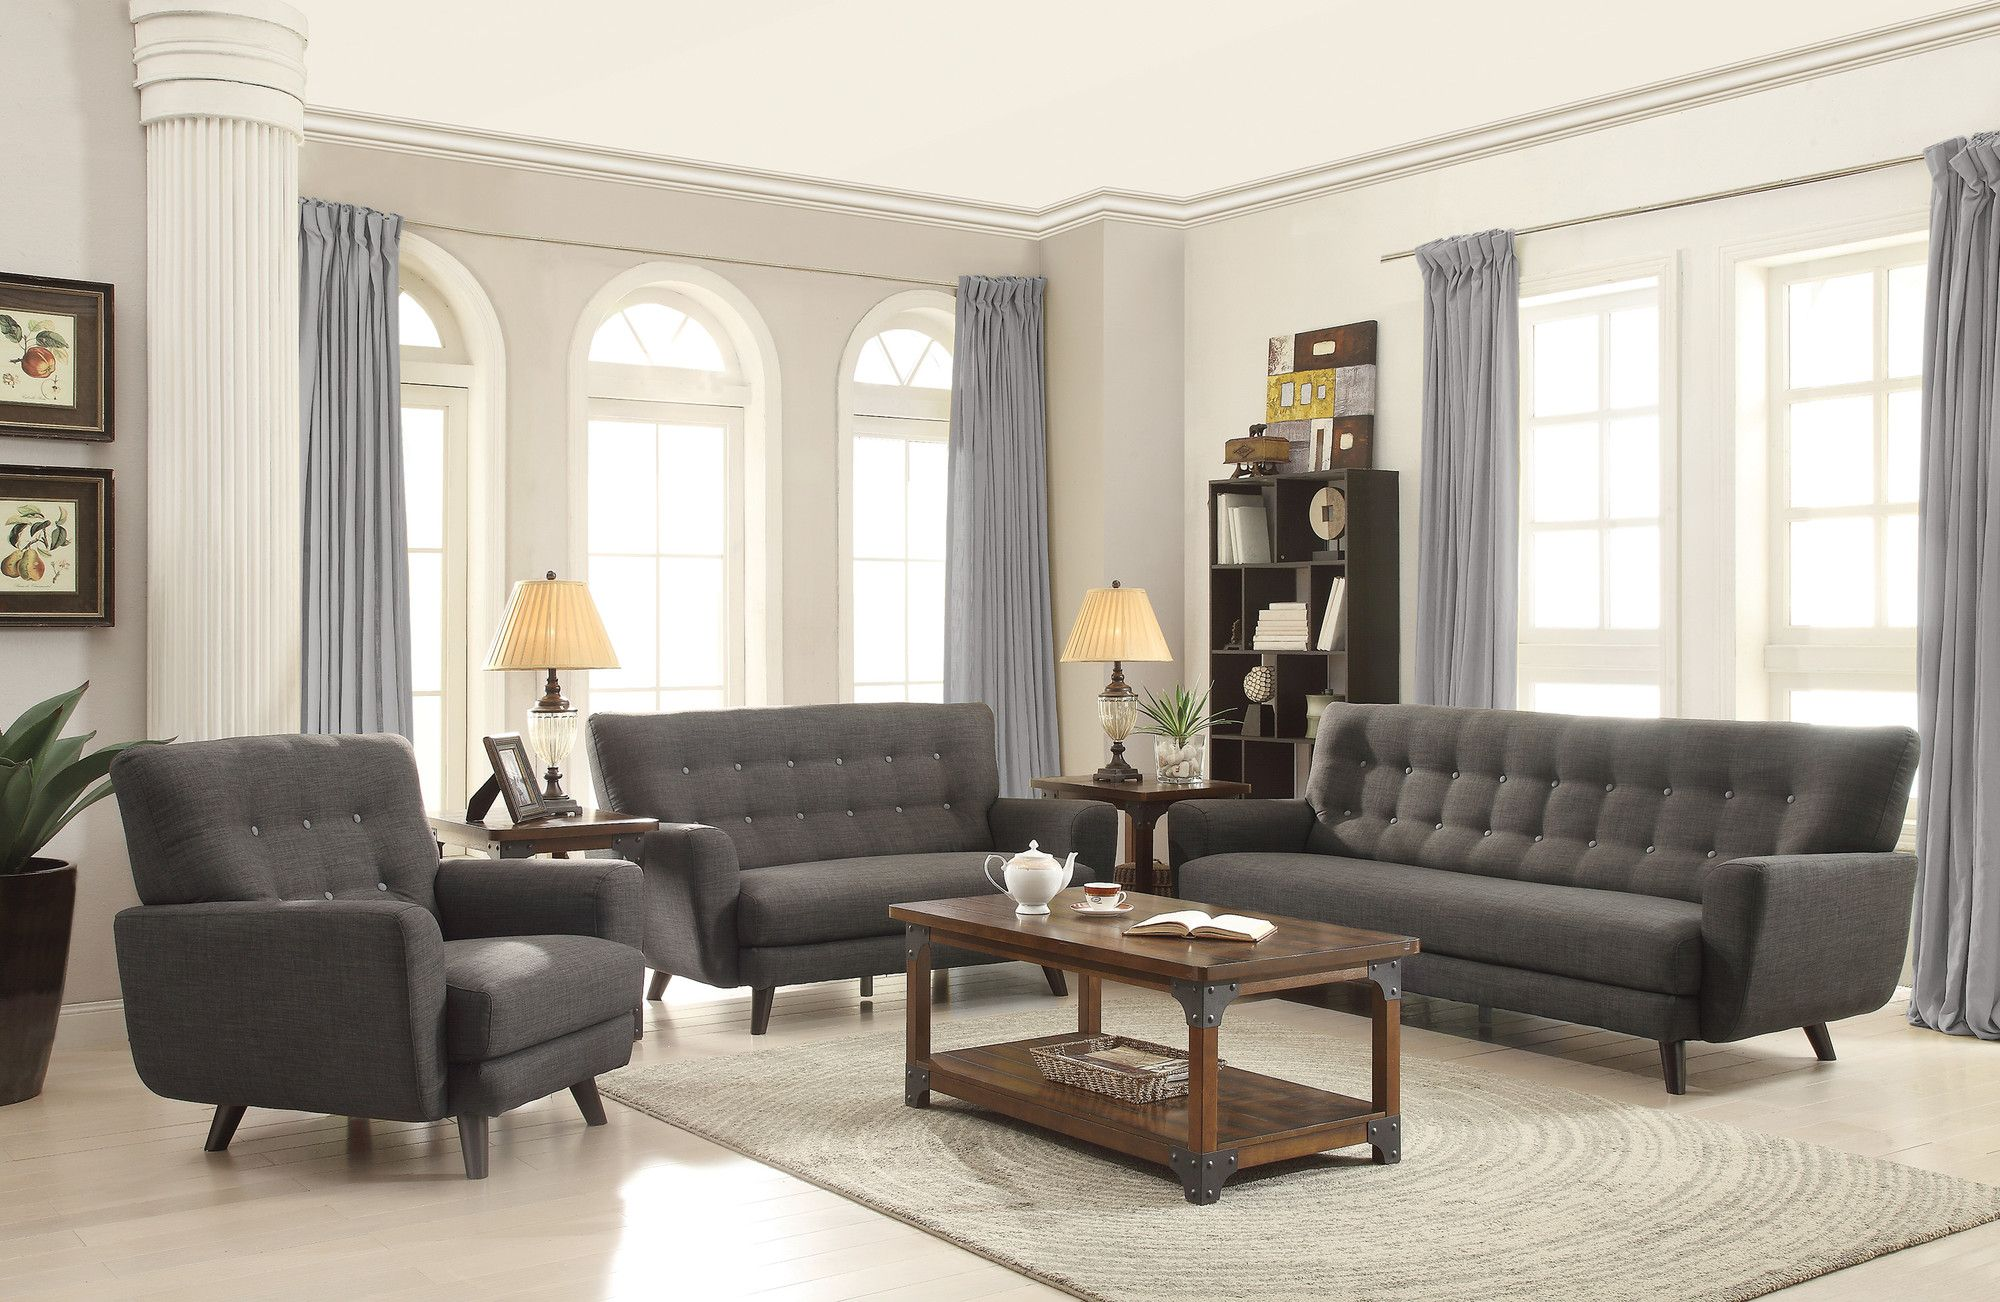 Shop Wayfair Ca For A Zillion Things Home Across All Styles And